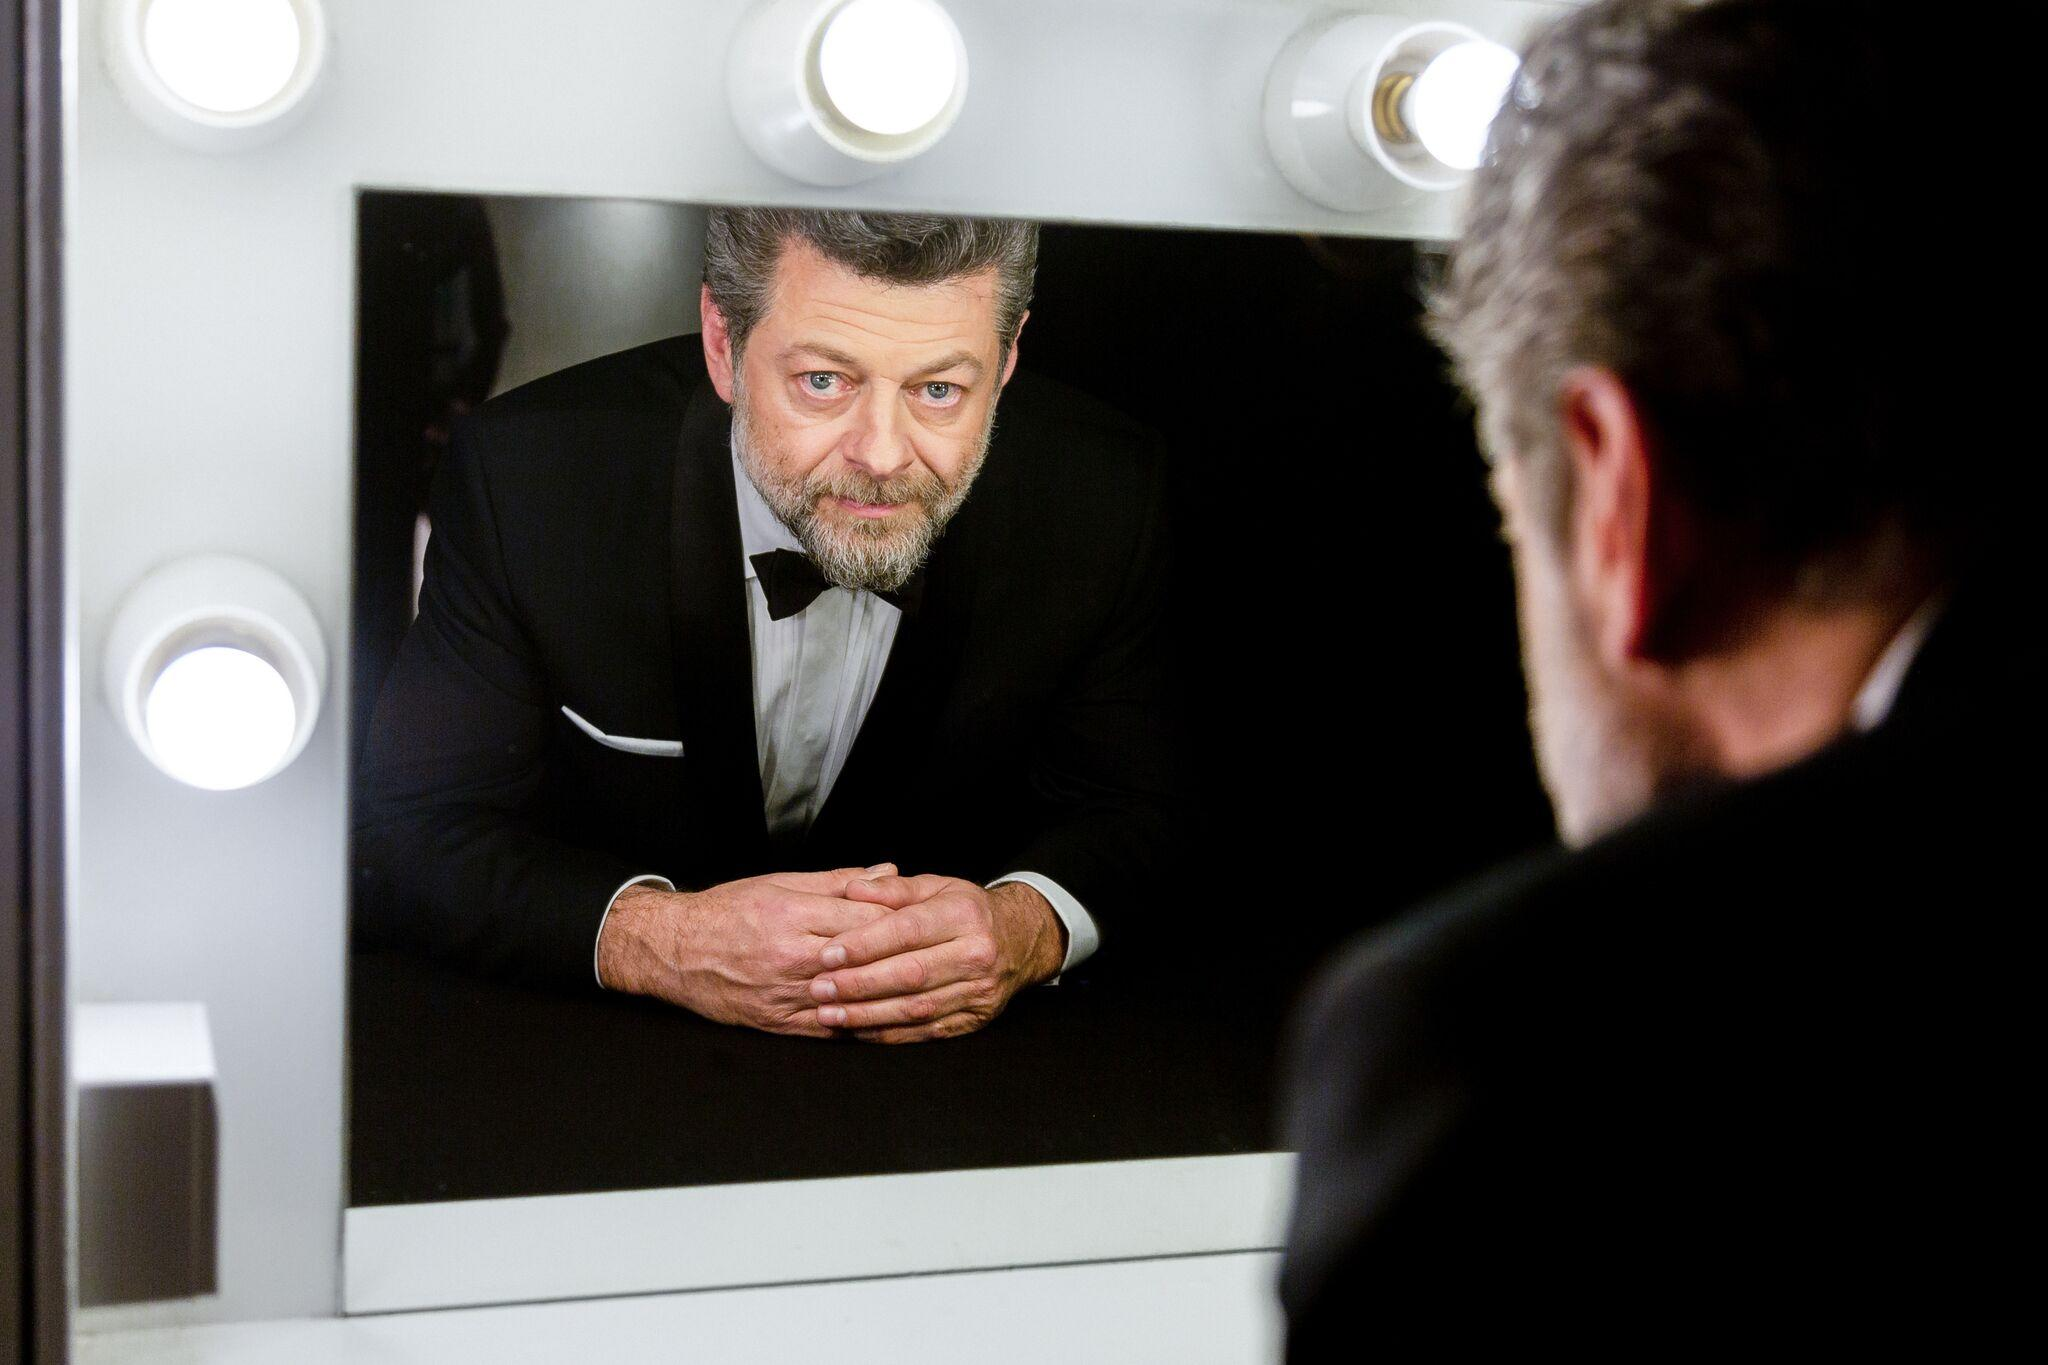 Andy Serkis honoured with Outstanding British Contribution to Cinema Award at the 73rd BAFTA Film Awards